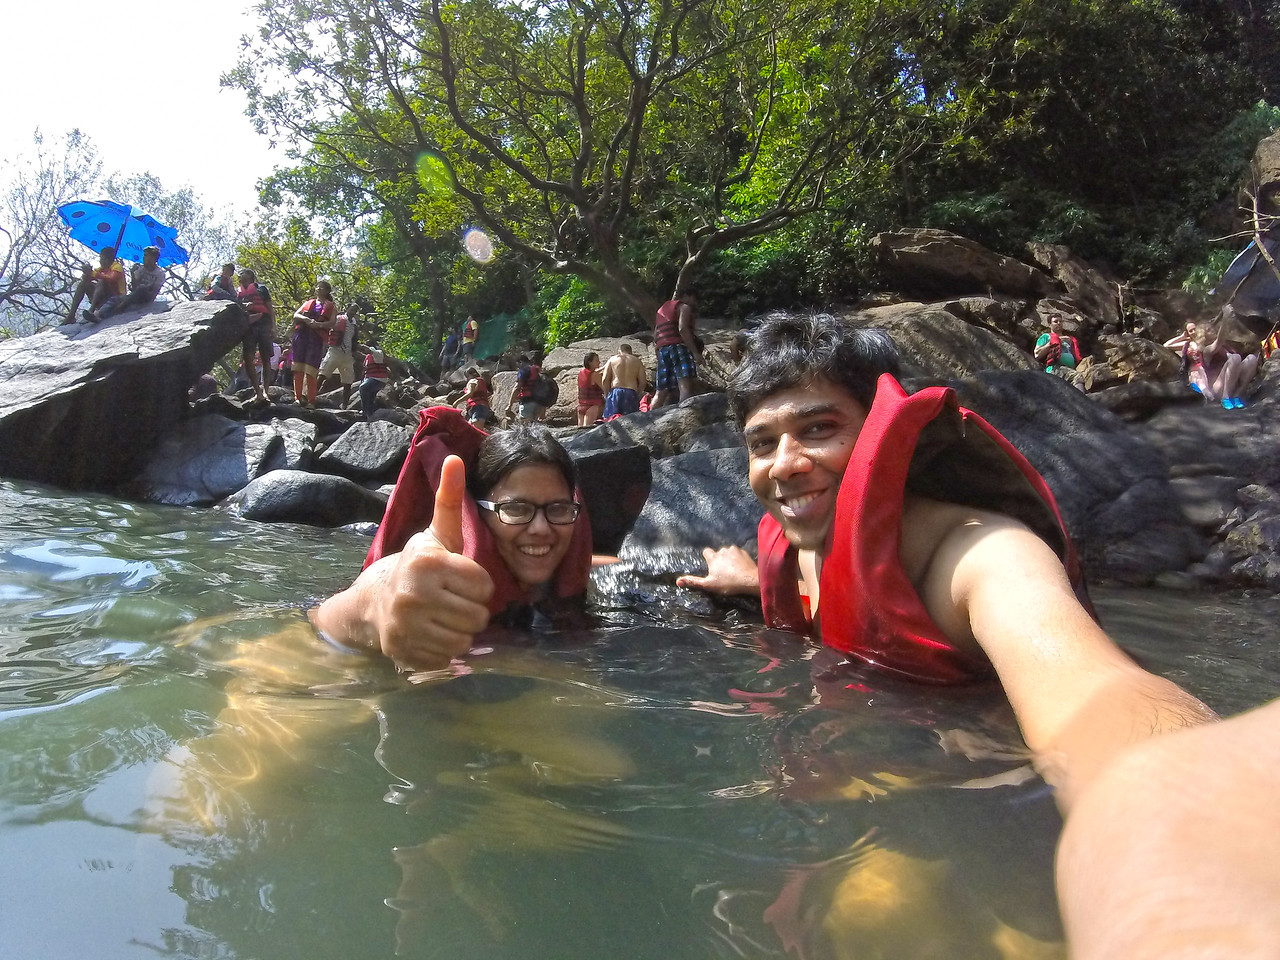 Sandeepa and Chetan swimming in the waters of the Dudhsagar waterfalls, Goa